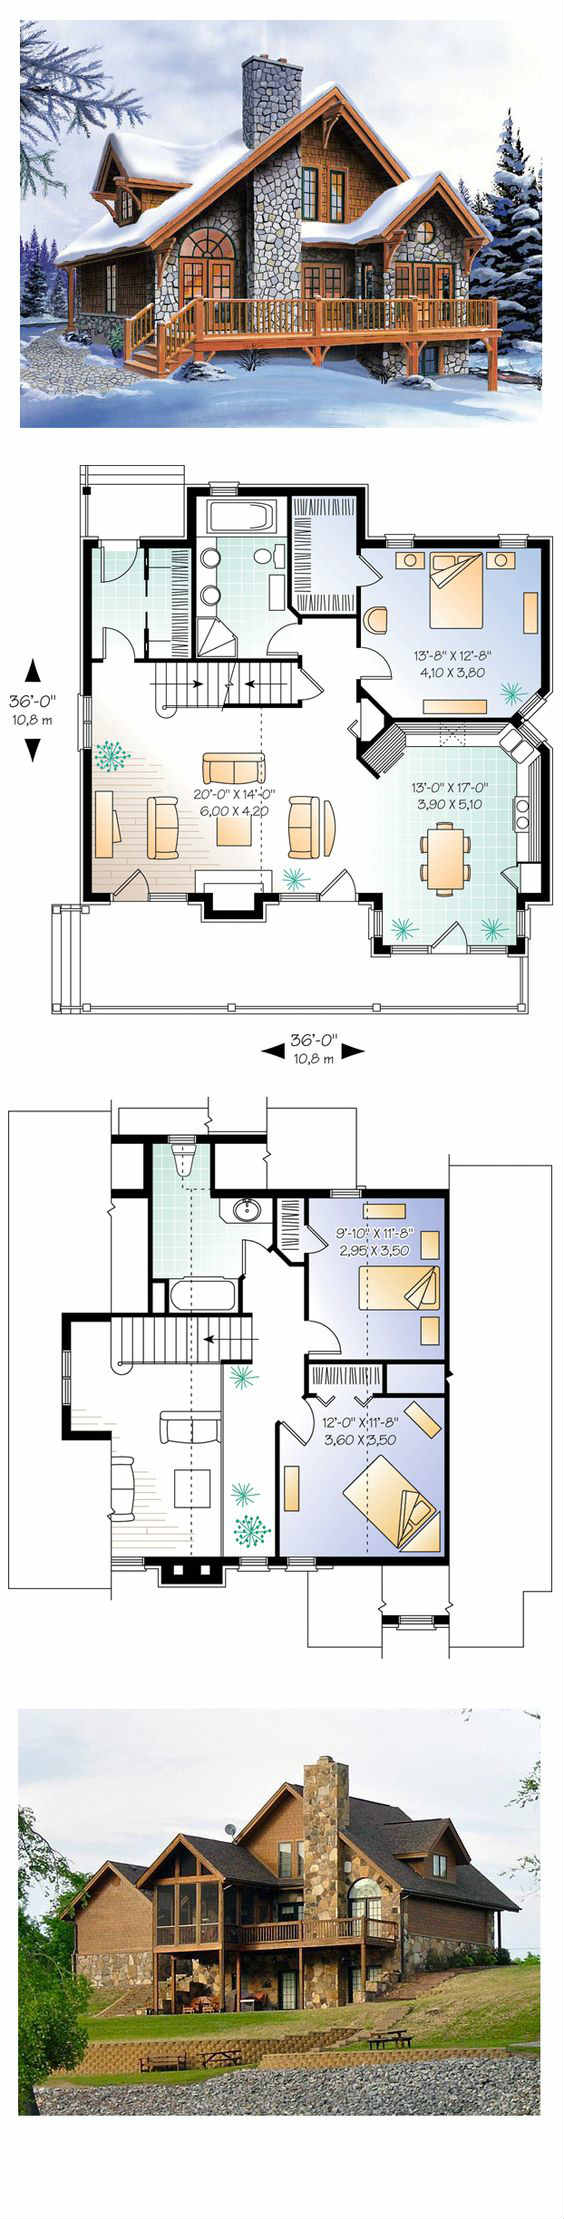 Different floor plans 28 images 9 perfect different for Different house designs